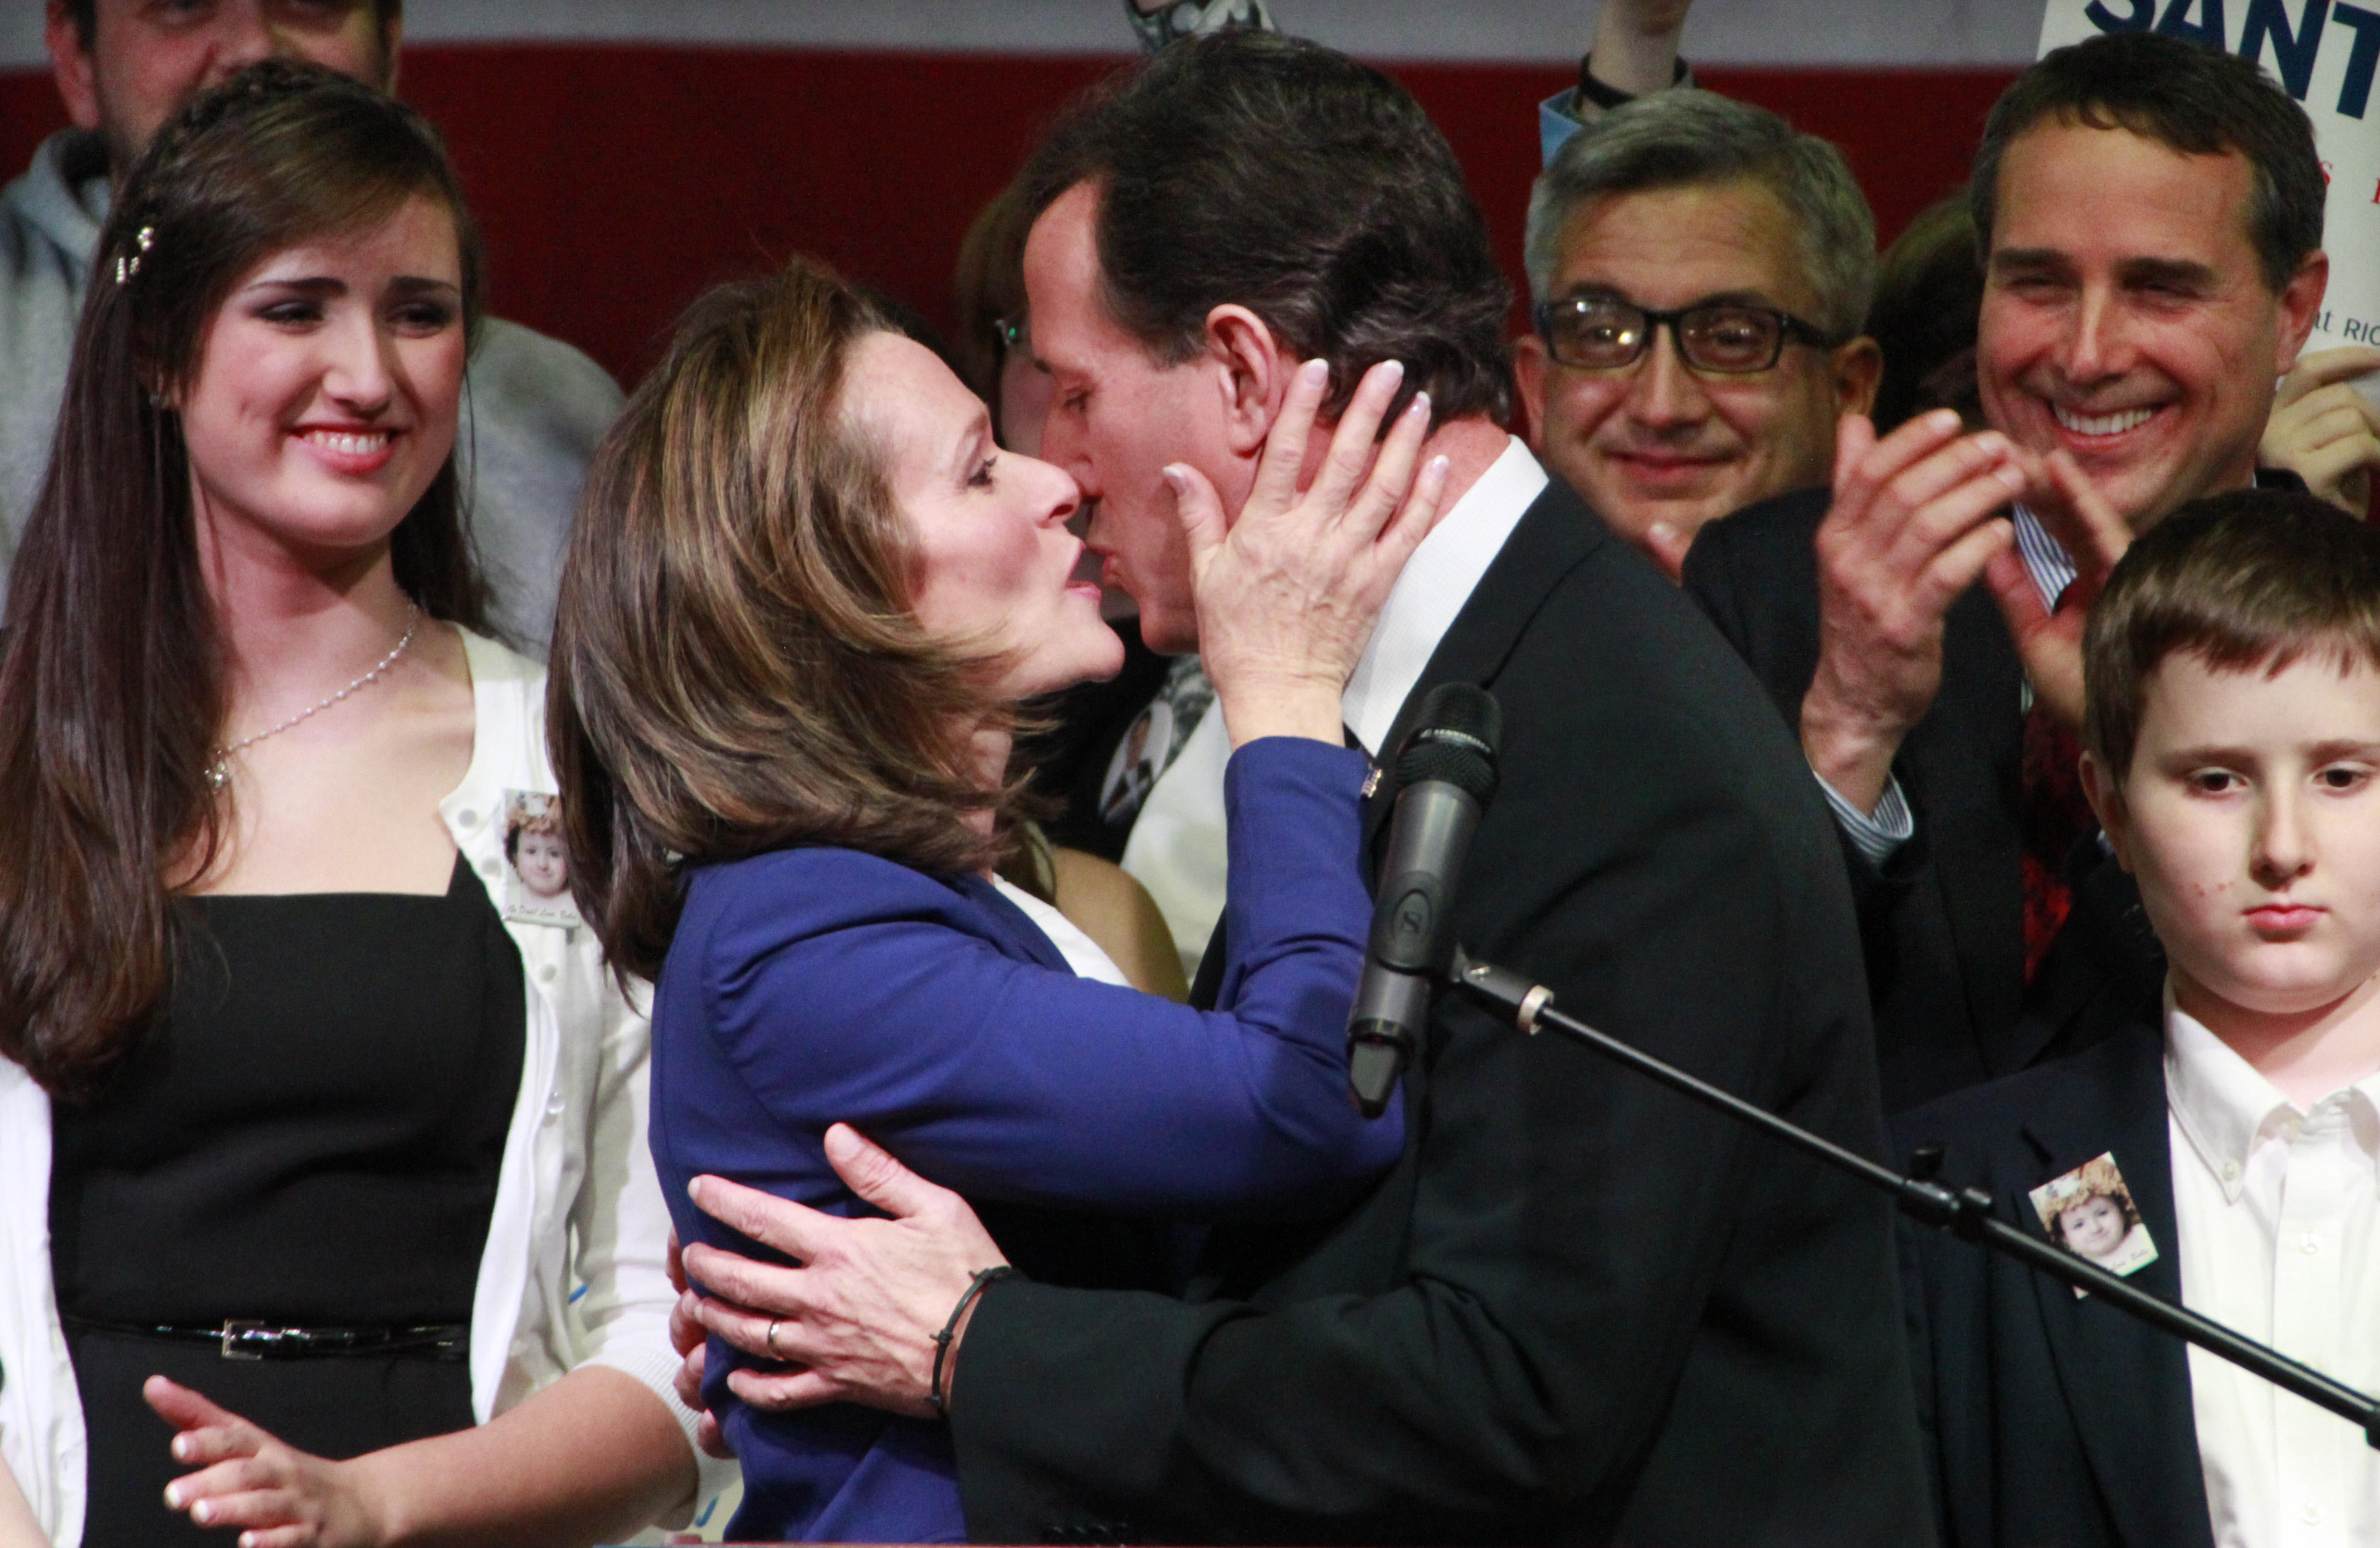 Republican presidential candidate, former Pennsylvania Sen. Rick Santorum kisses his wife Karen before speaking to supporters at an election-night party in the gymnasium of Steubenville High School in Steubenville, Ohio on March 6, 2012.